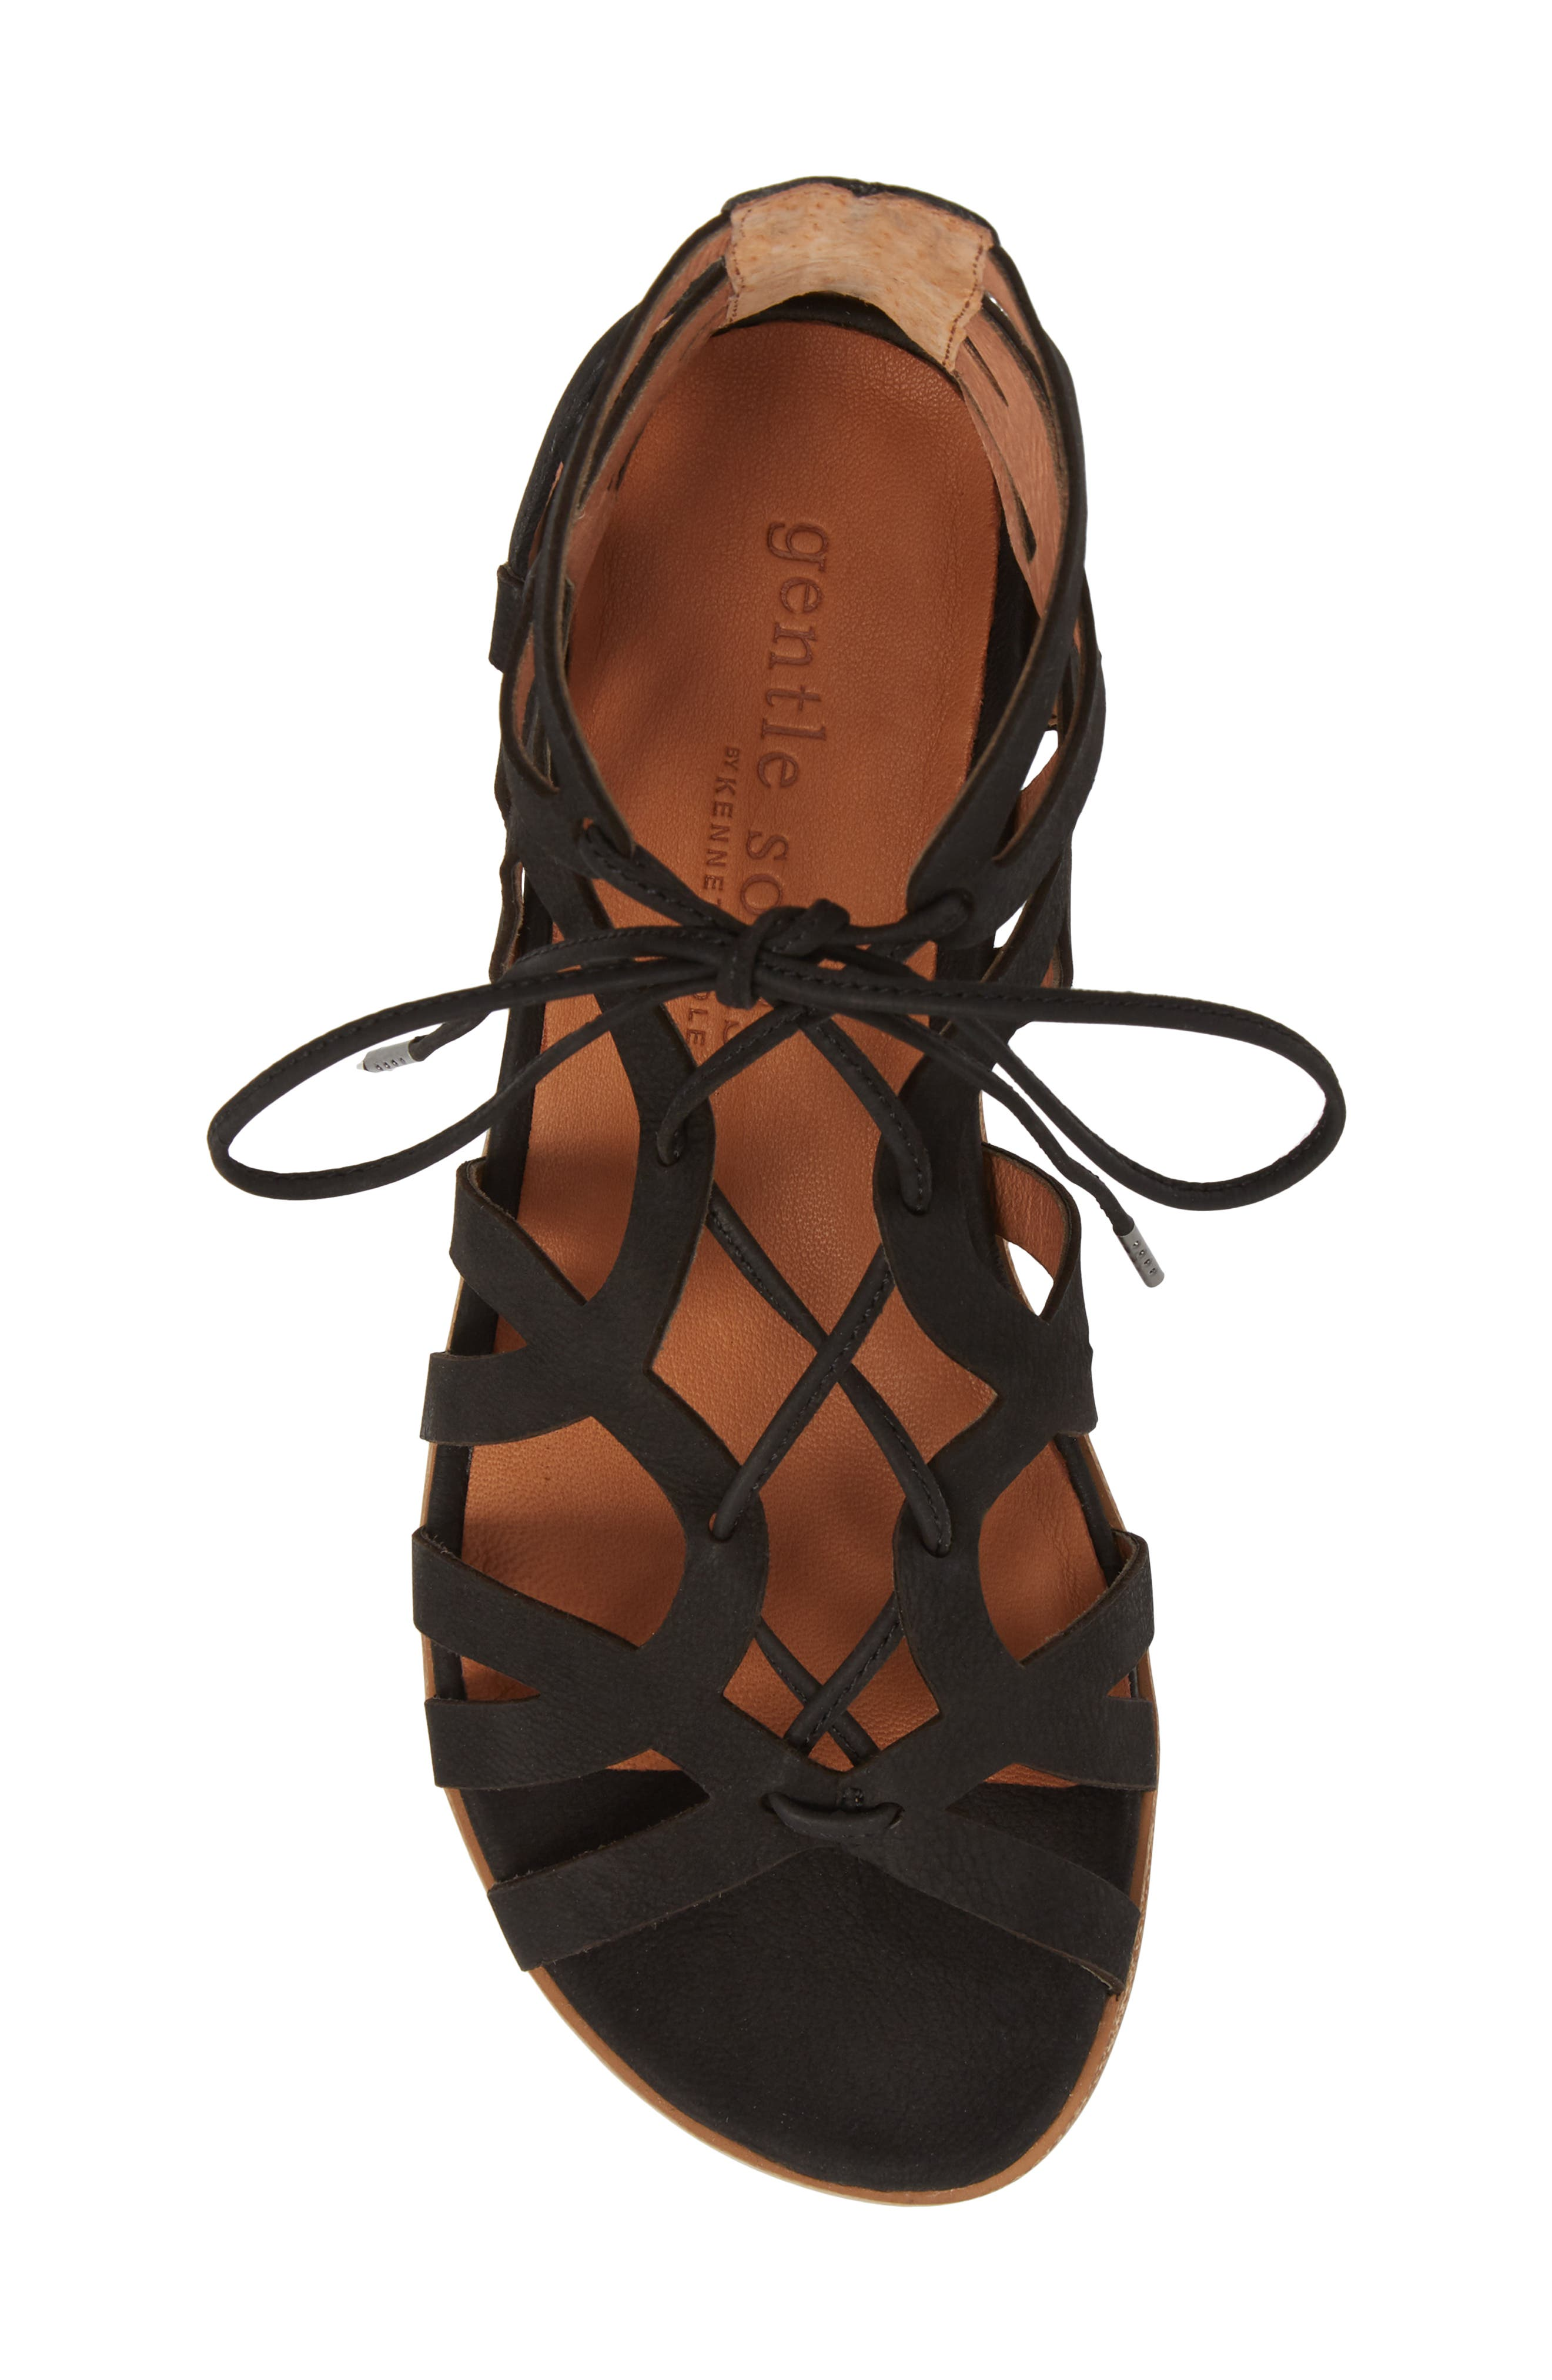 GENTLE SOULS BY KENNETH COLE, Larina Lace-Up Sandal, Alternate thumbnail 5, color, BLACK NUBUCK